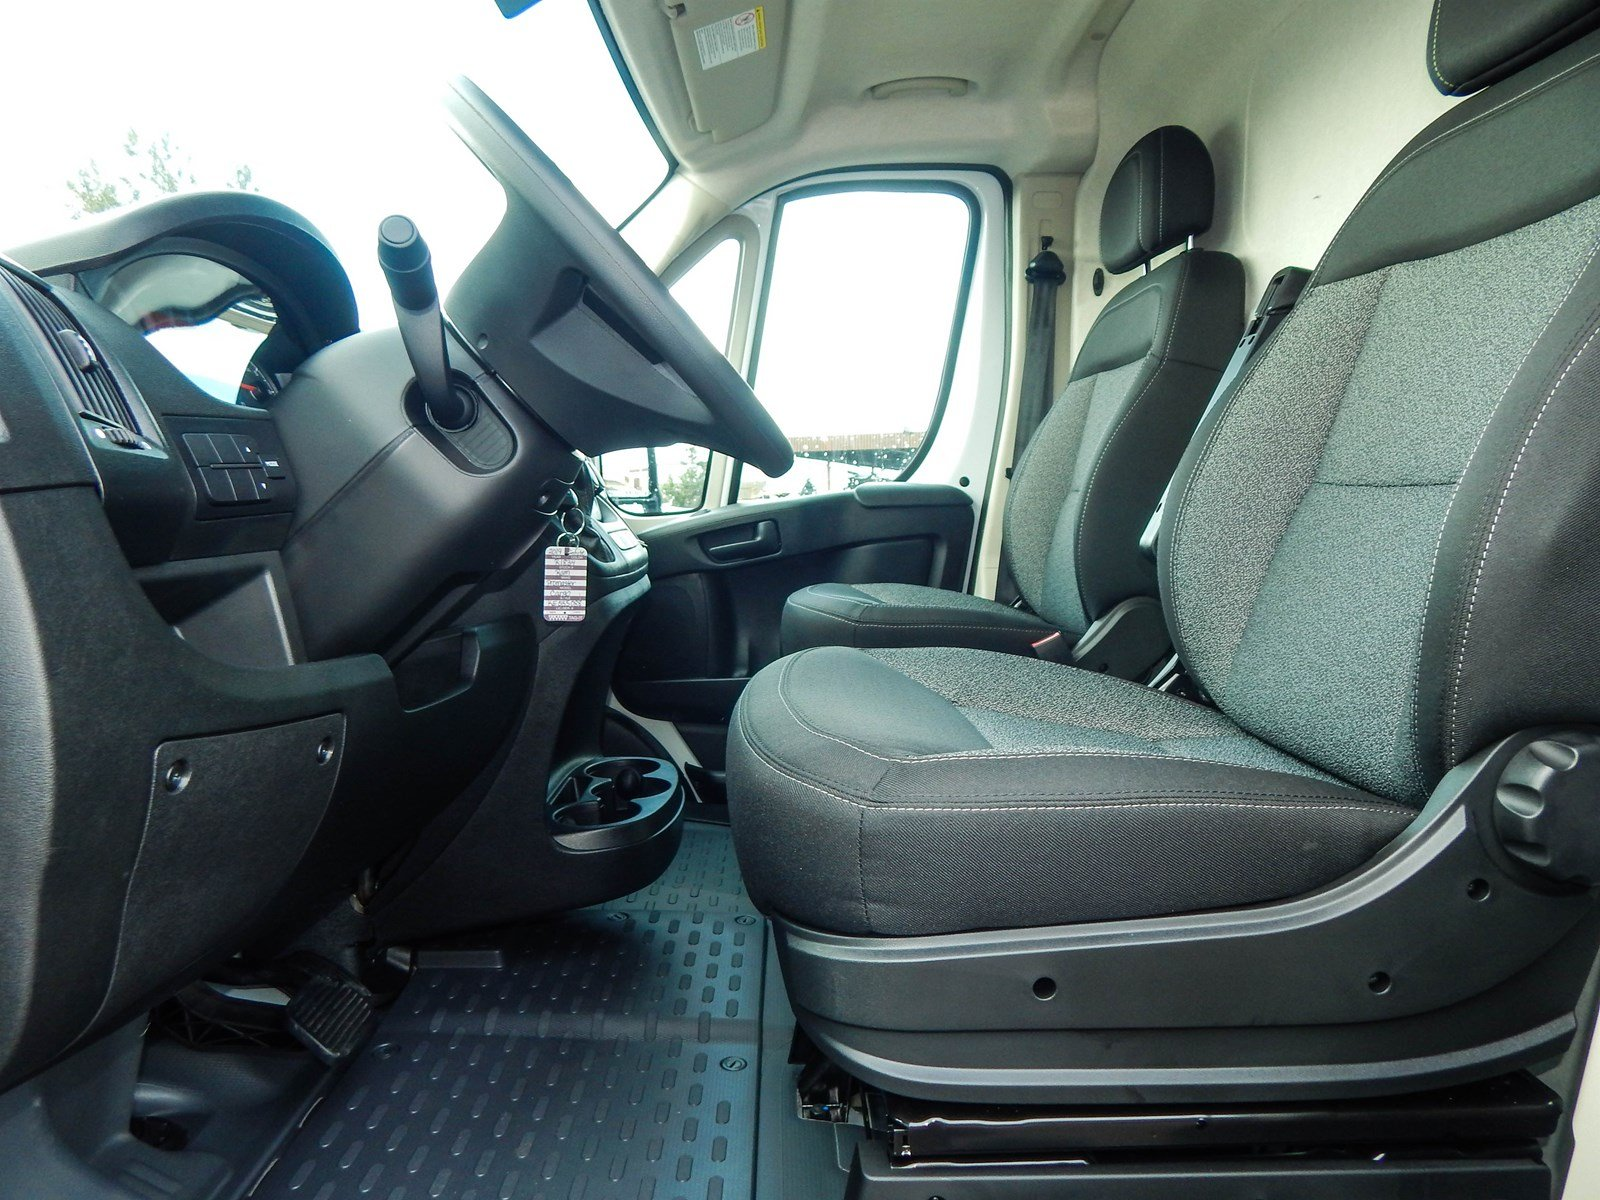 2019 ProMaster 1500 High Roof FWD, Empty Cargo Van #R1834 - photo 10